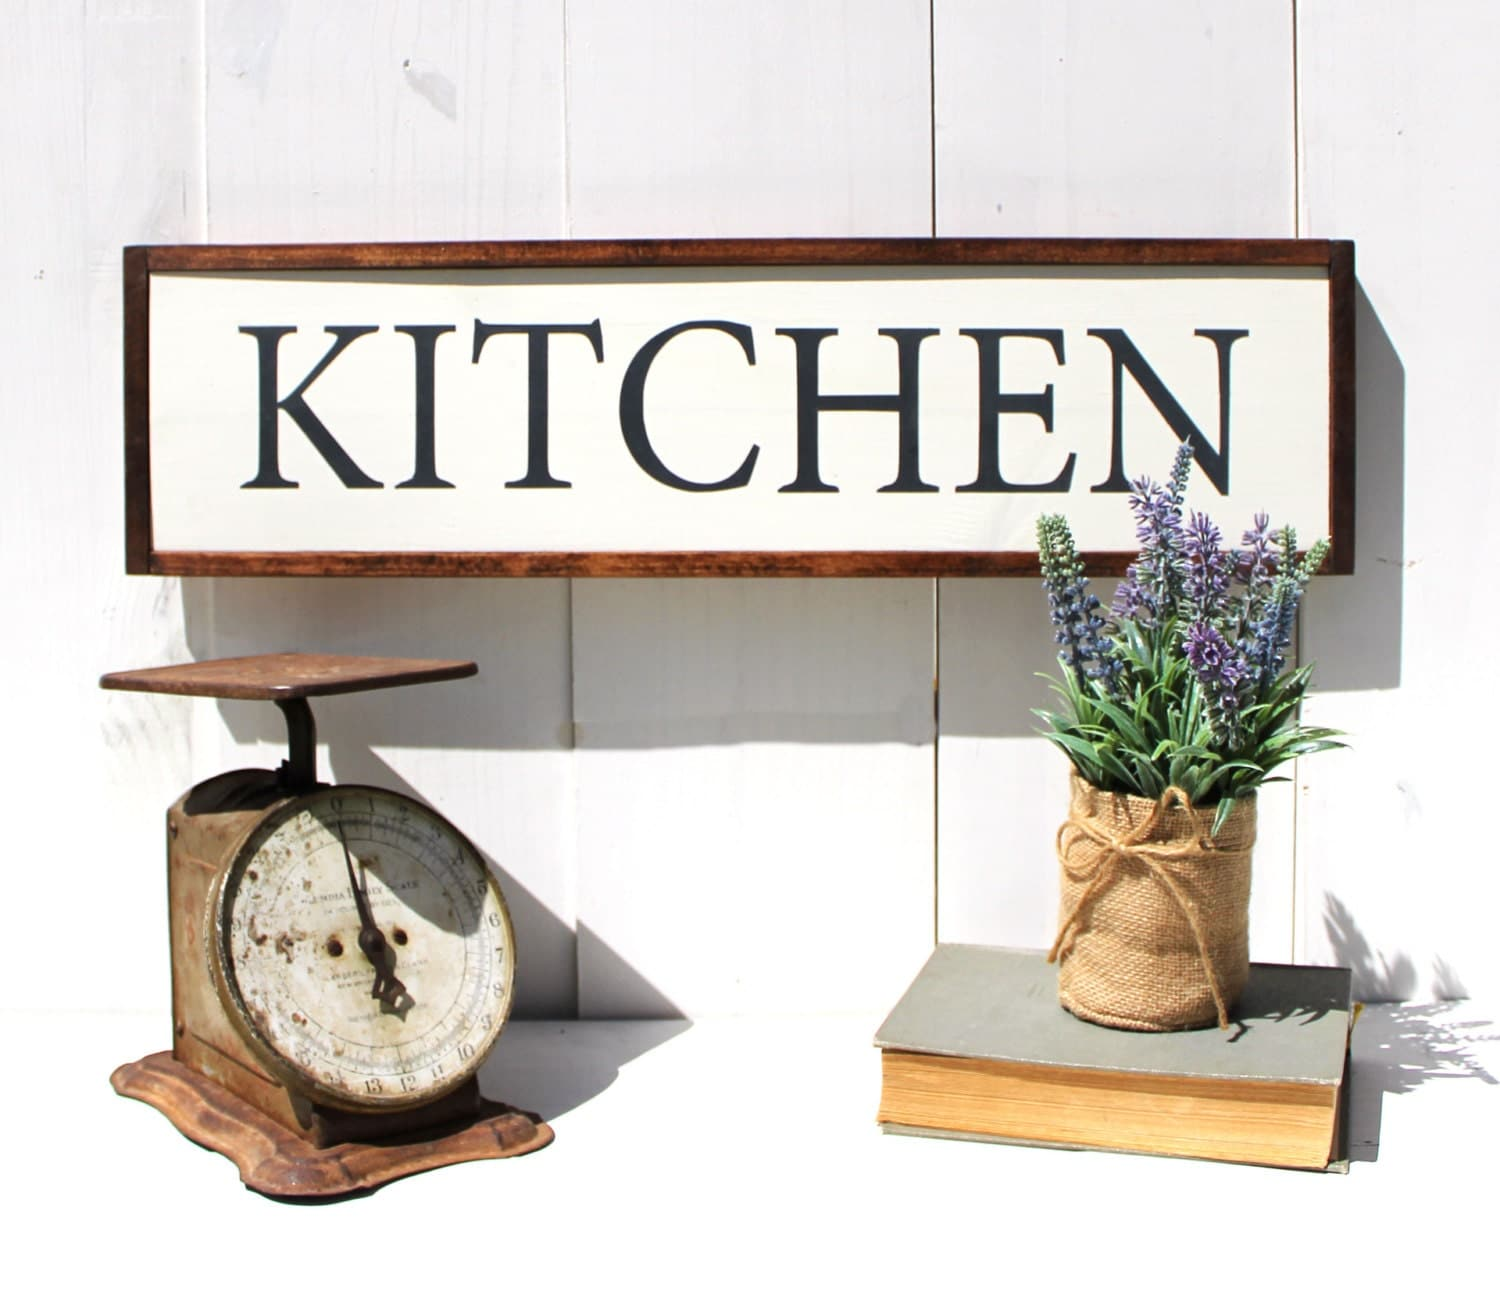 Wooden Signs Home Decor: Kitchen Wood Sign Rustic Kitchen Decor Rustic Sign